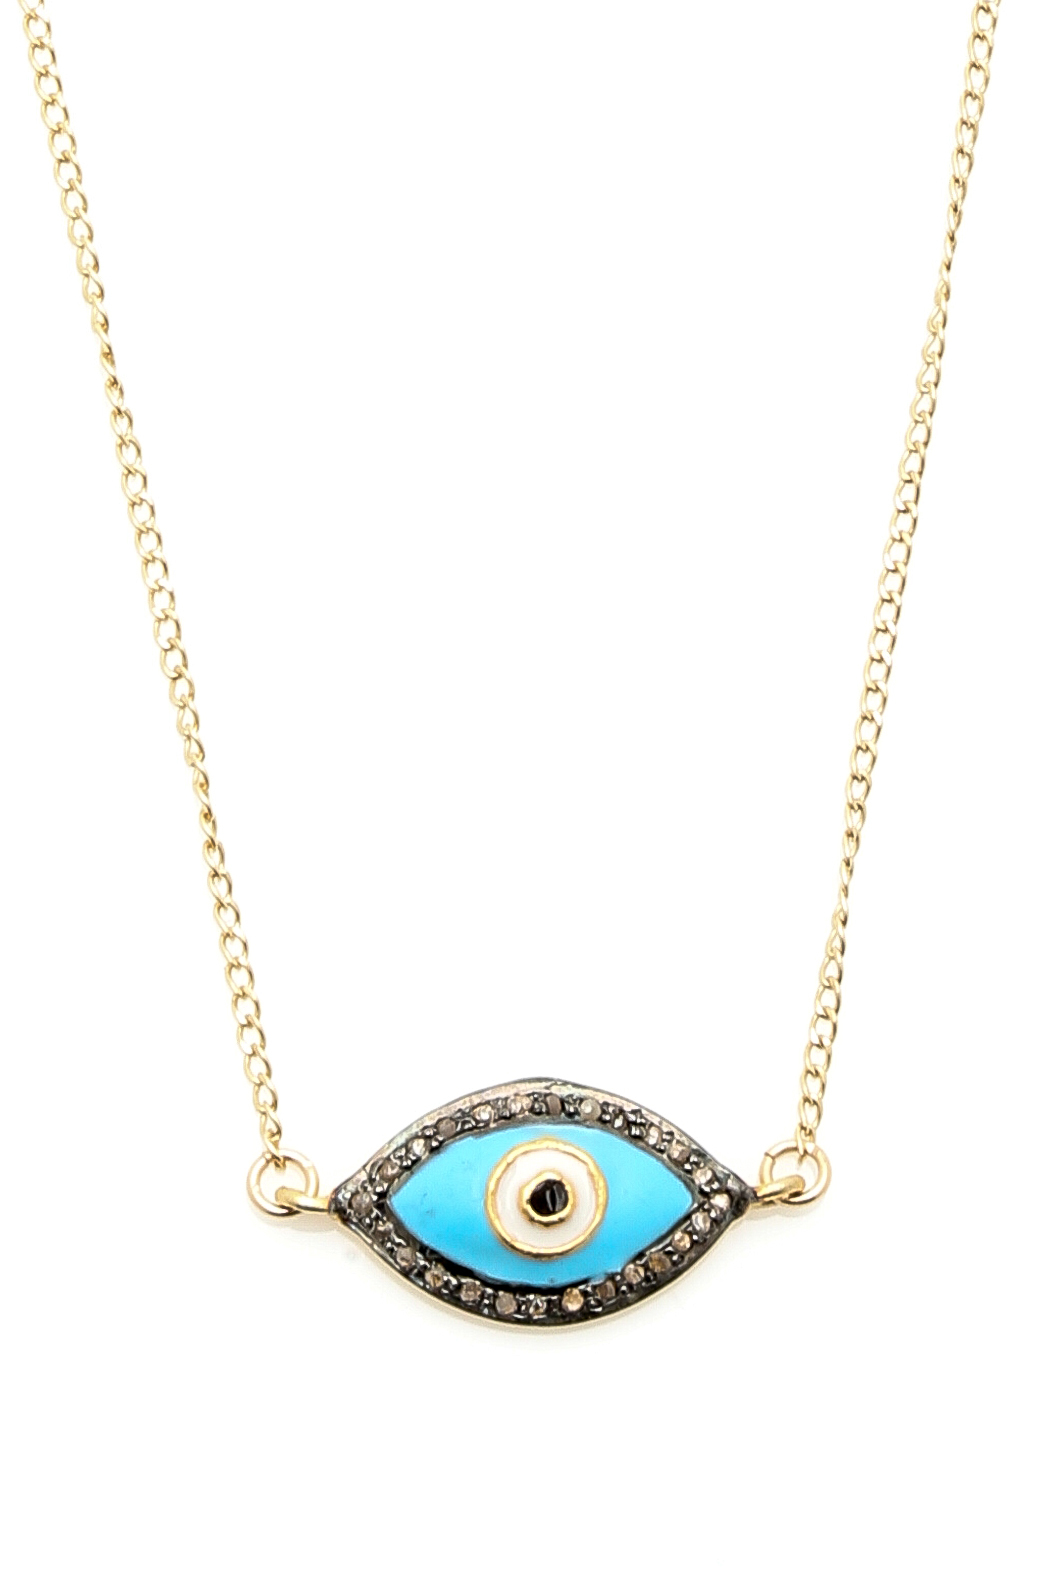 melene-kent-jewels-evil-eye-necklace-05cf272c_l.jpg